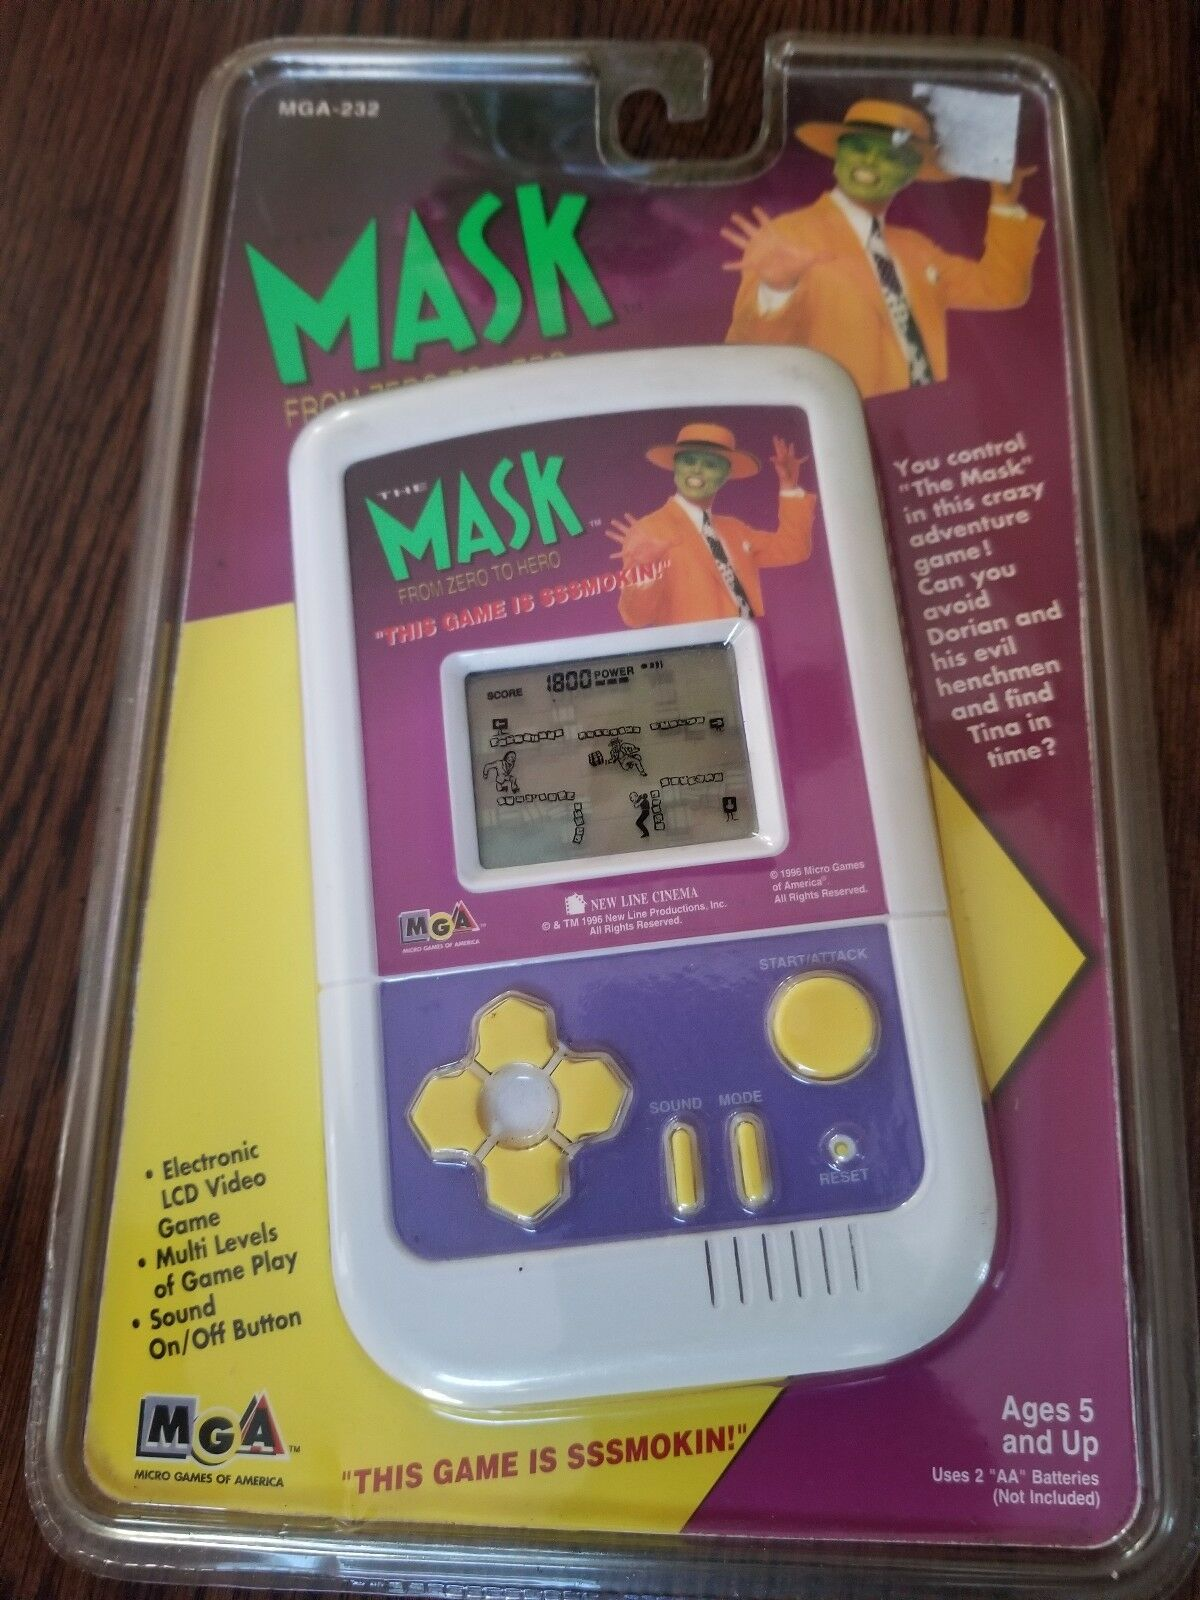 The The The Mask From Zero To Hero Handheld Game 1996 MGA 0353de